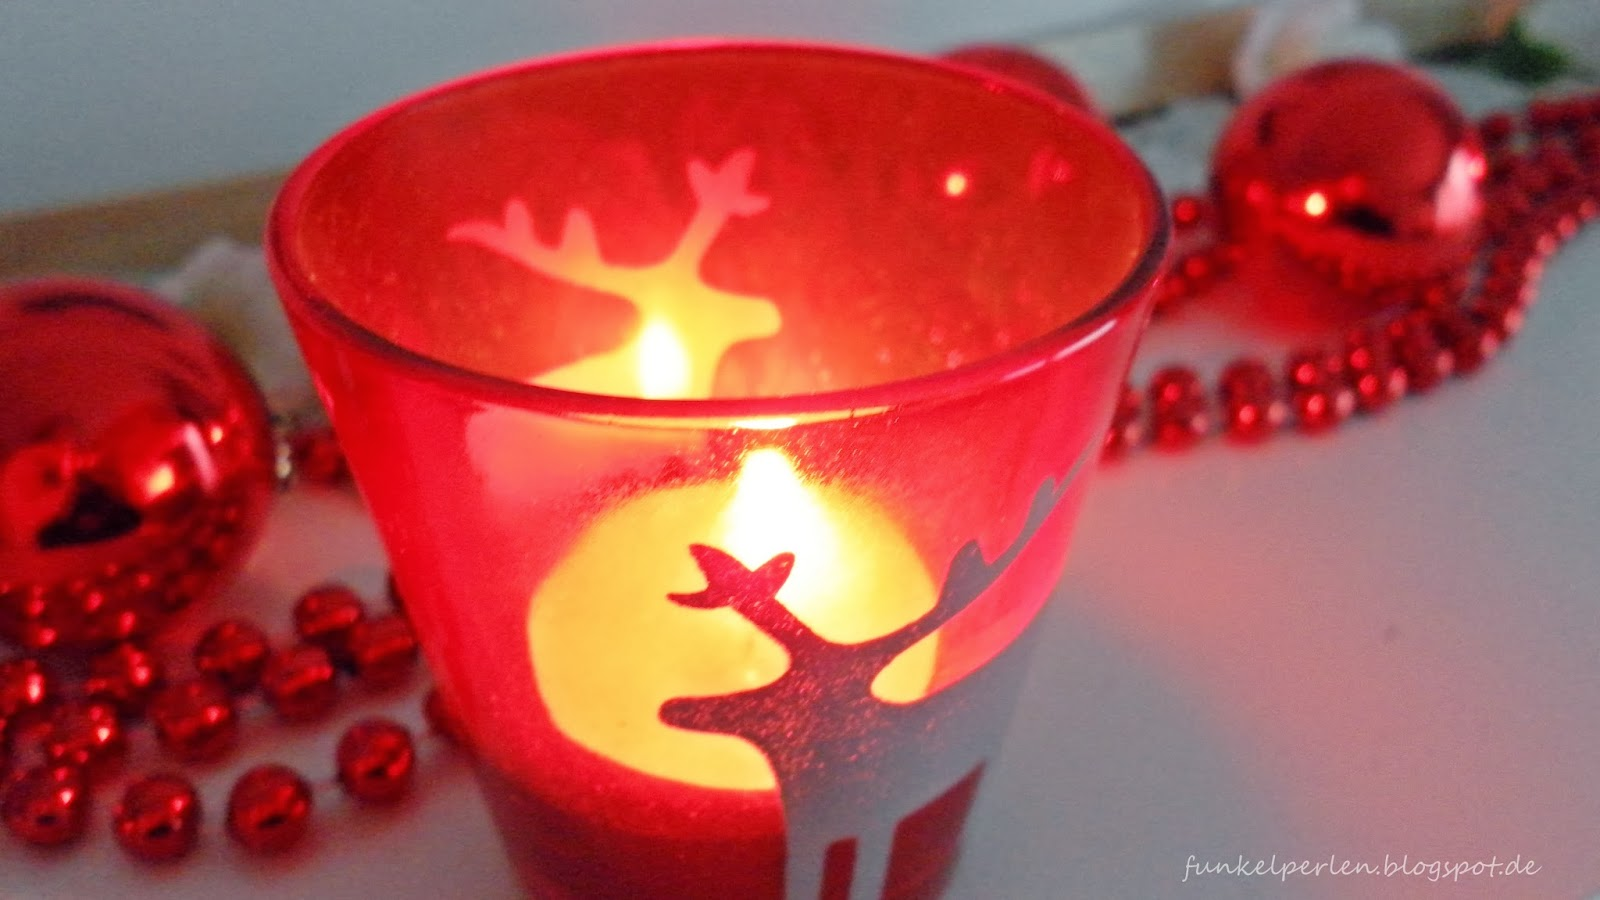 1. Advent: Traditionen // funkelperlen.blogspot.de